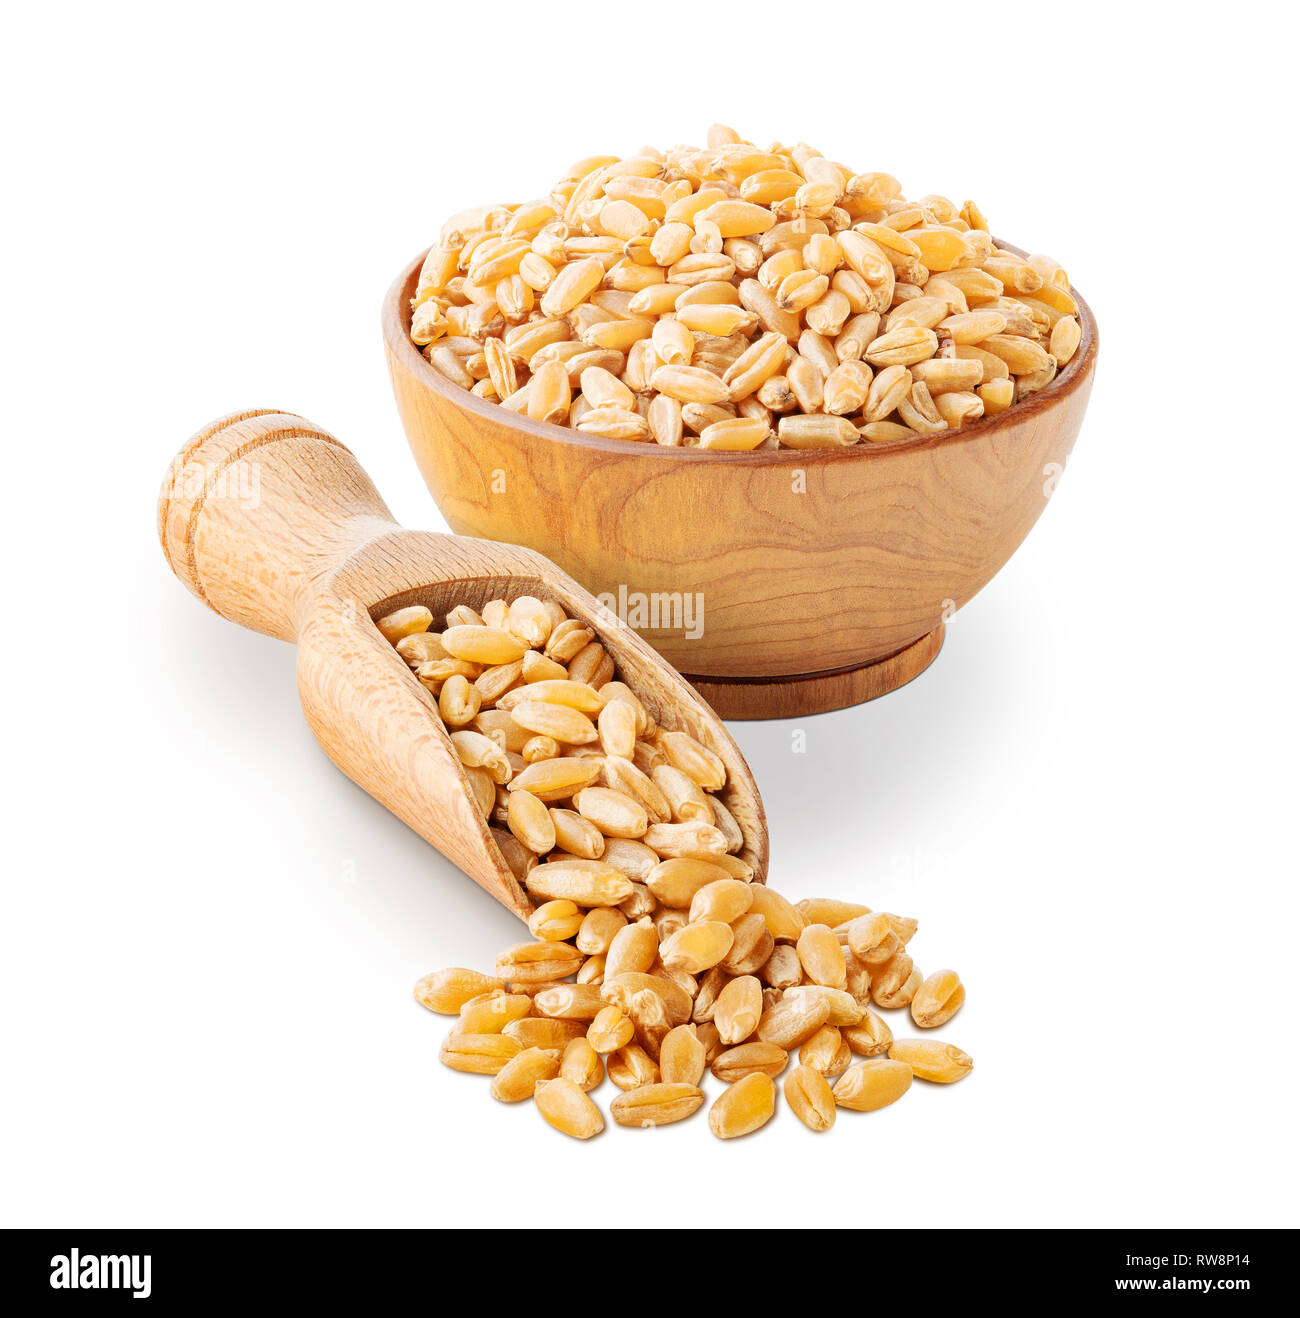 Wheat grains isolated on white background Stock Photo